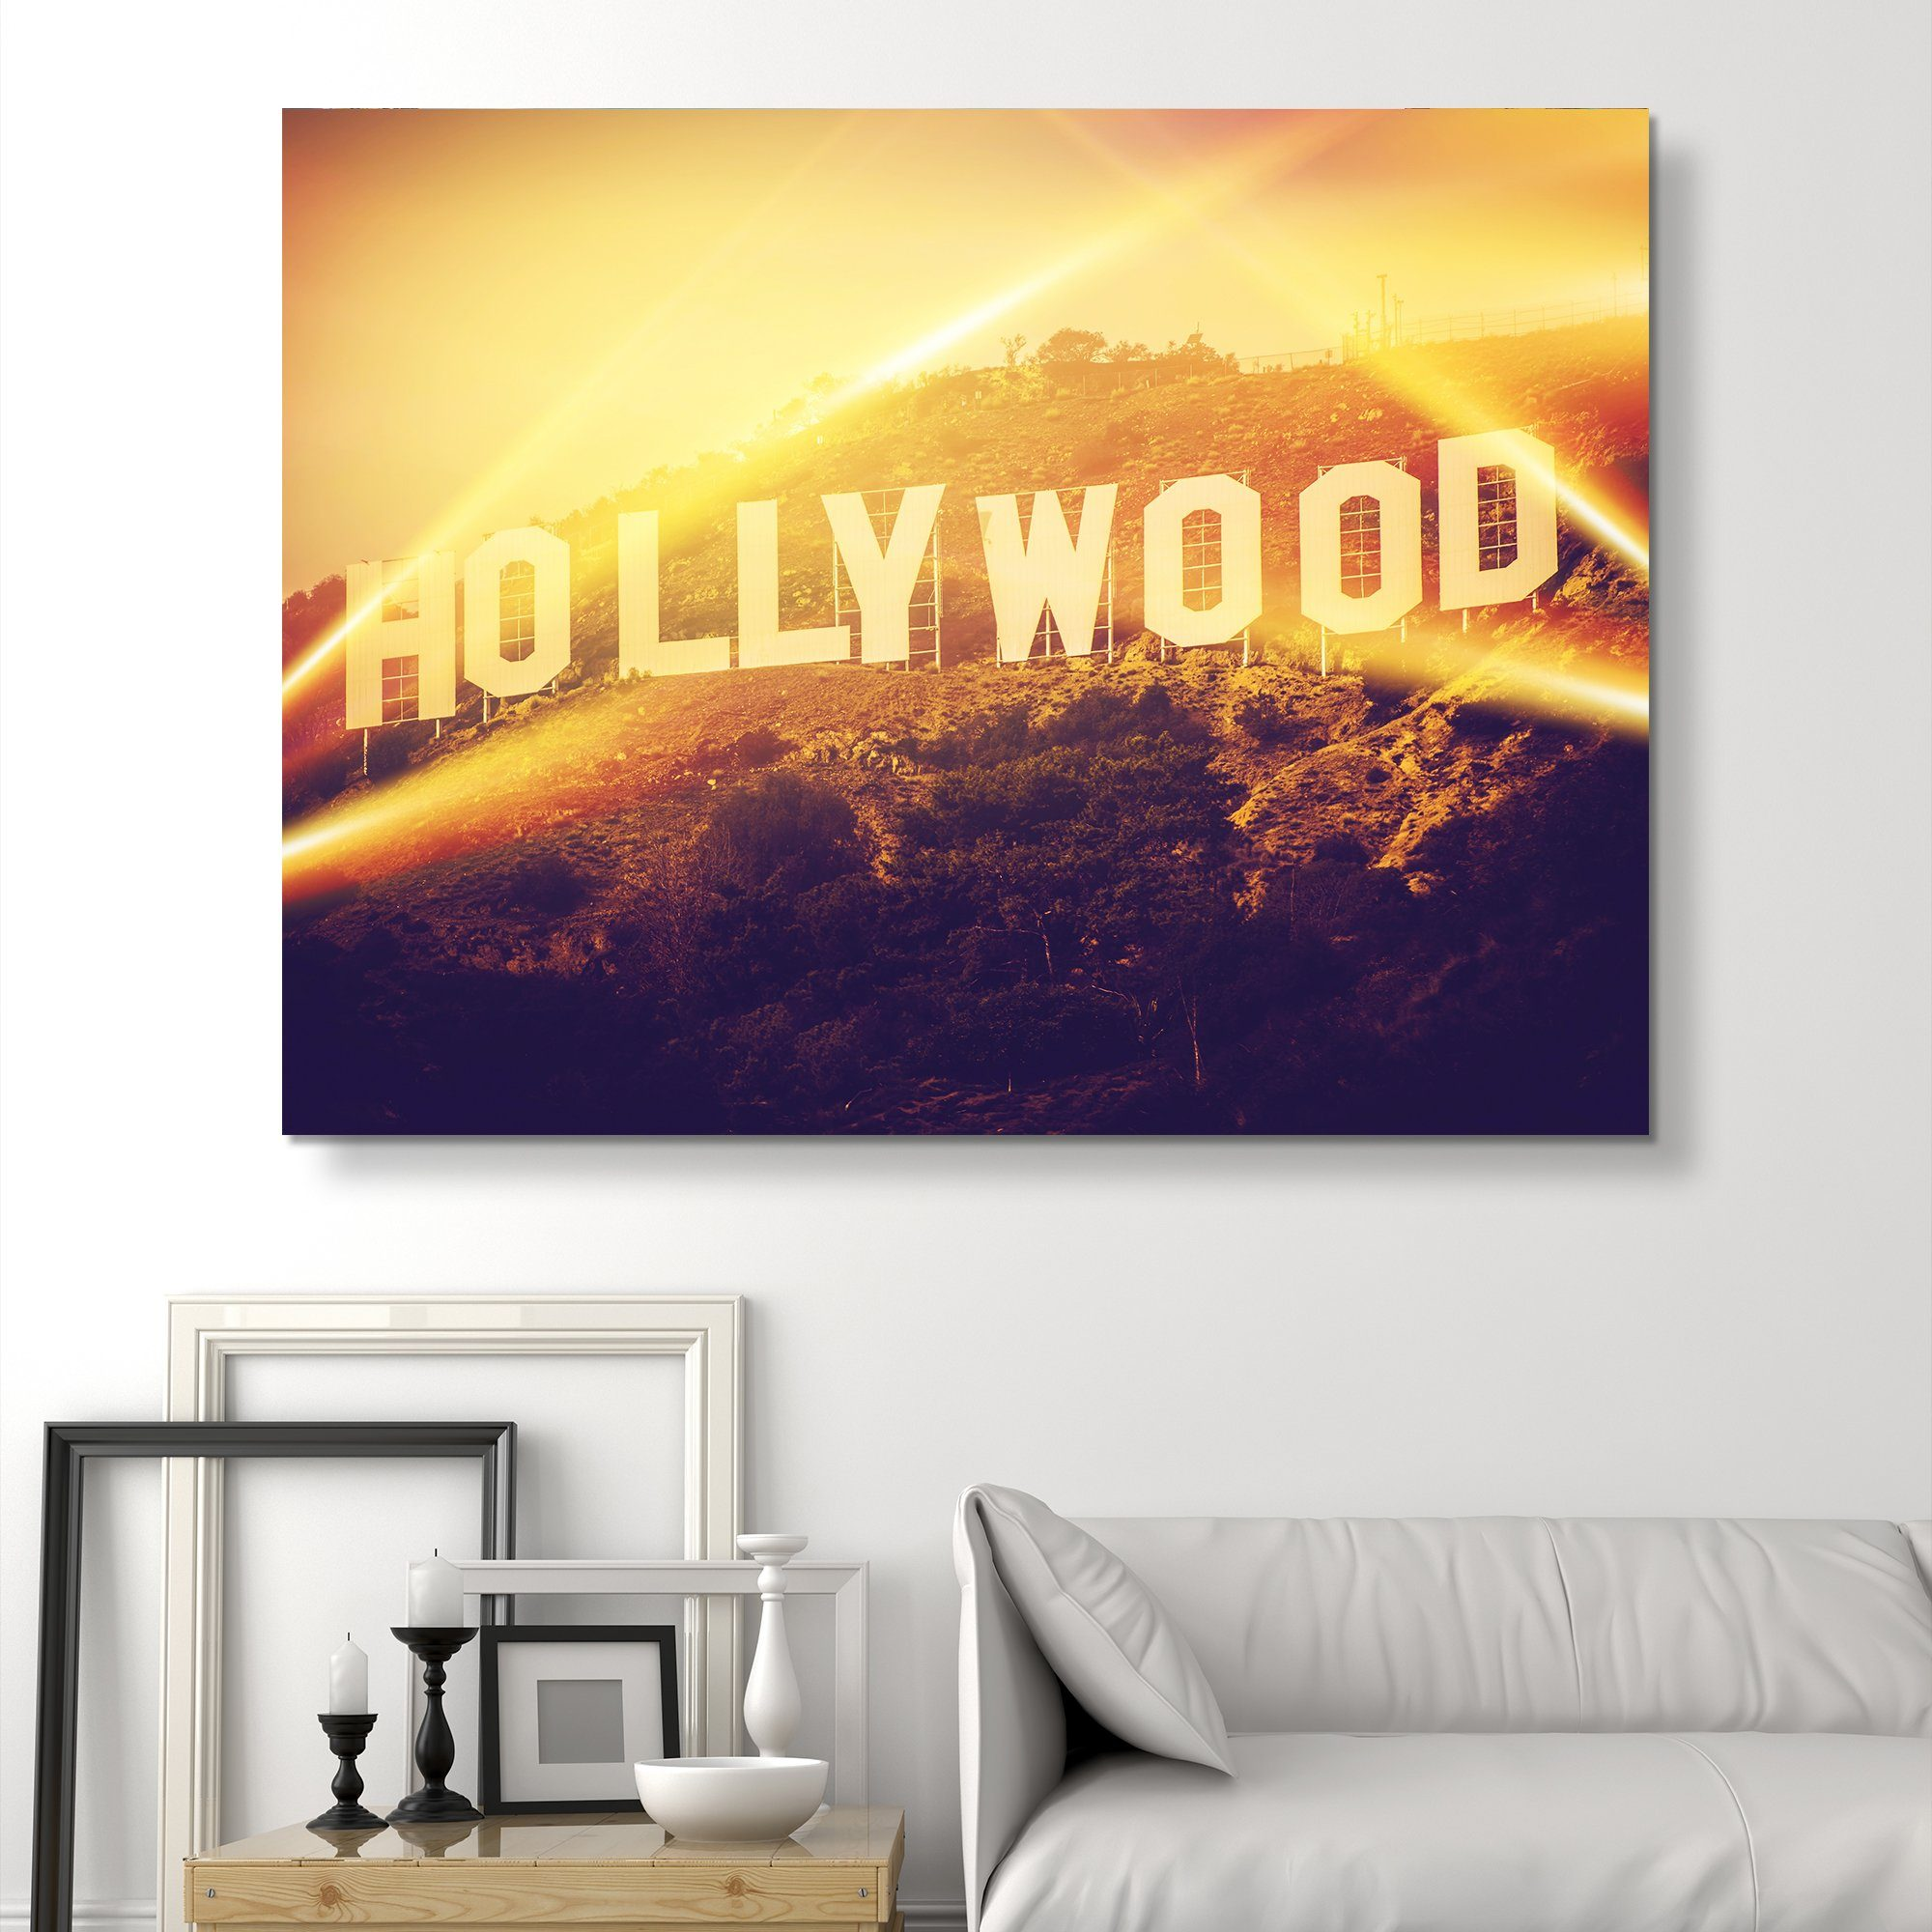 Hollywood wall art